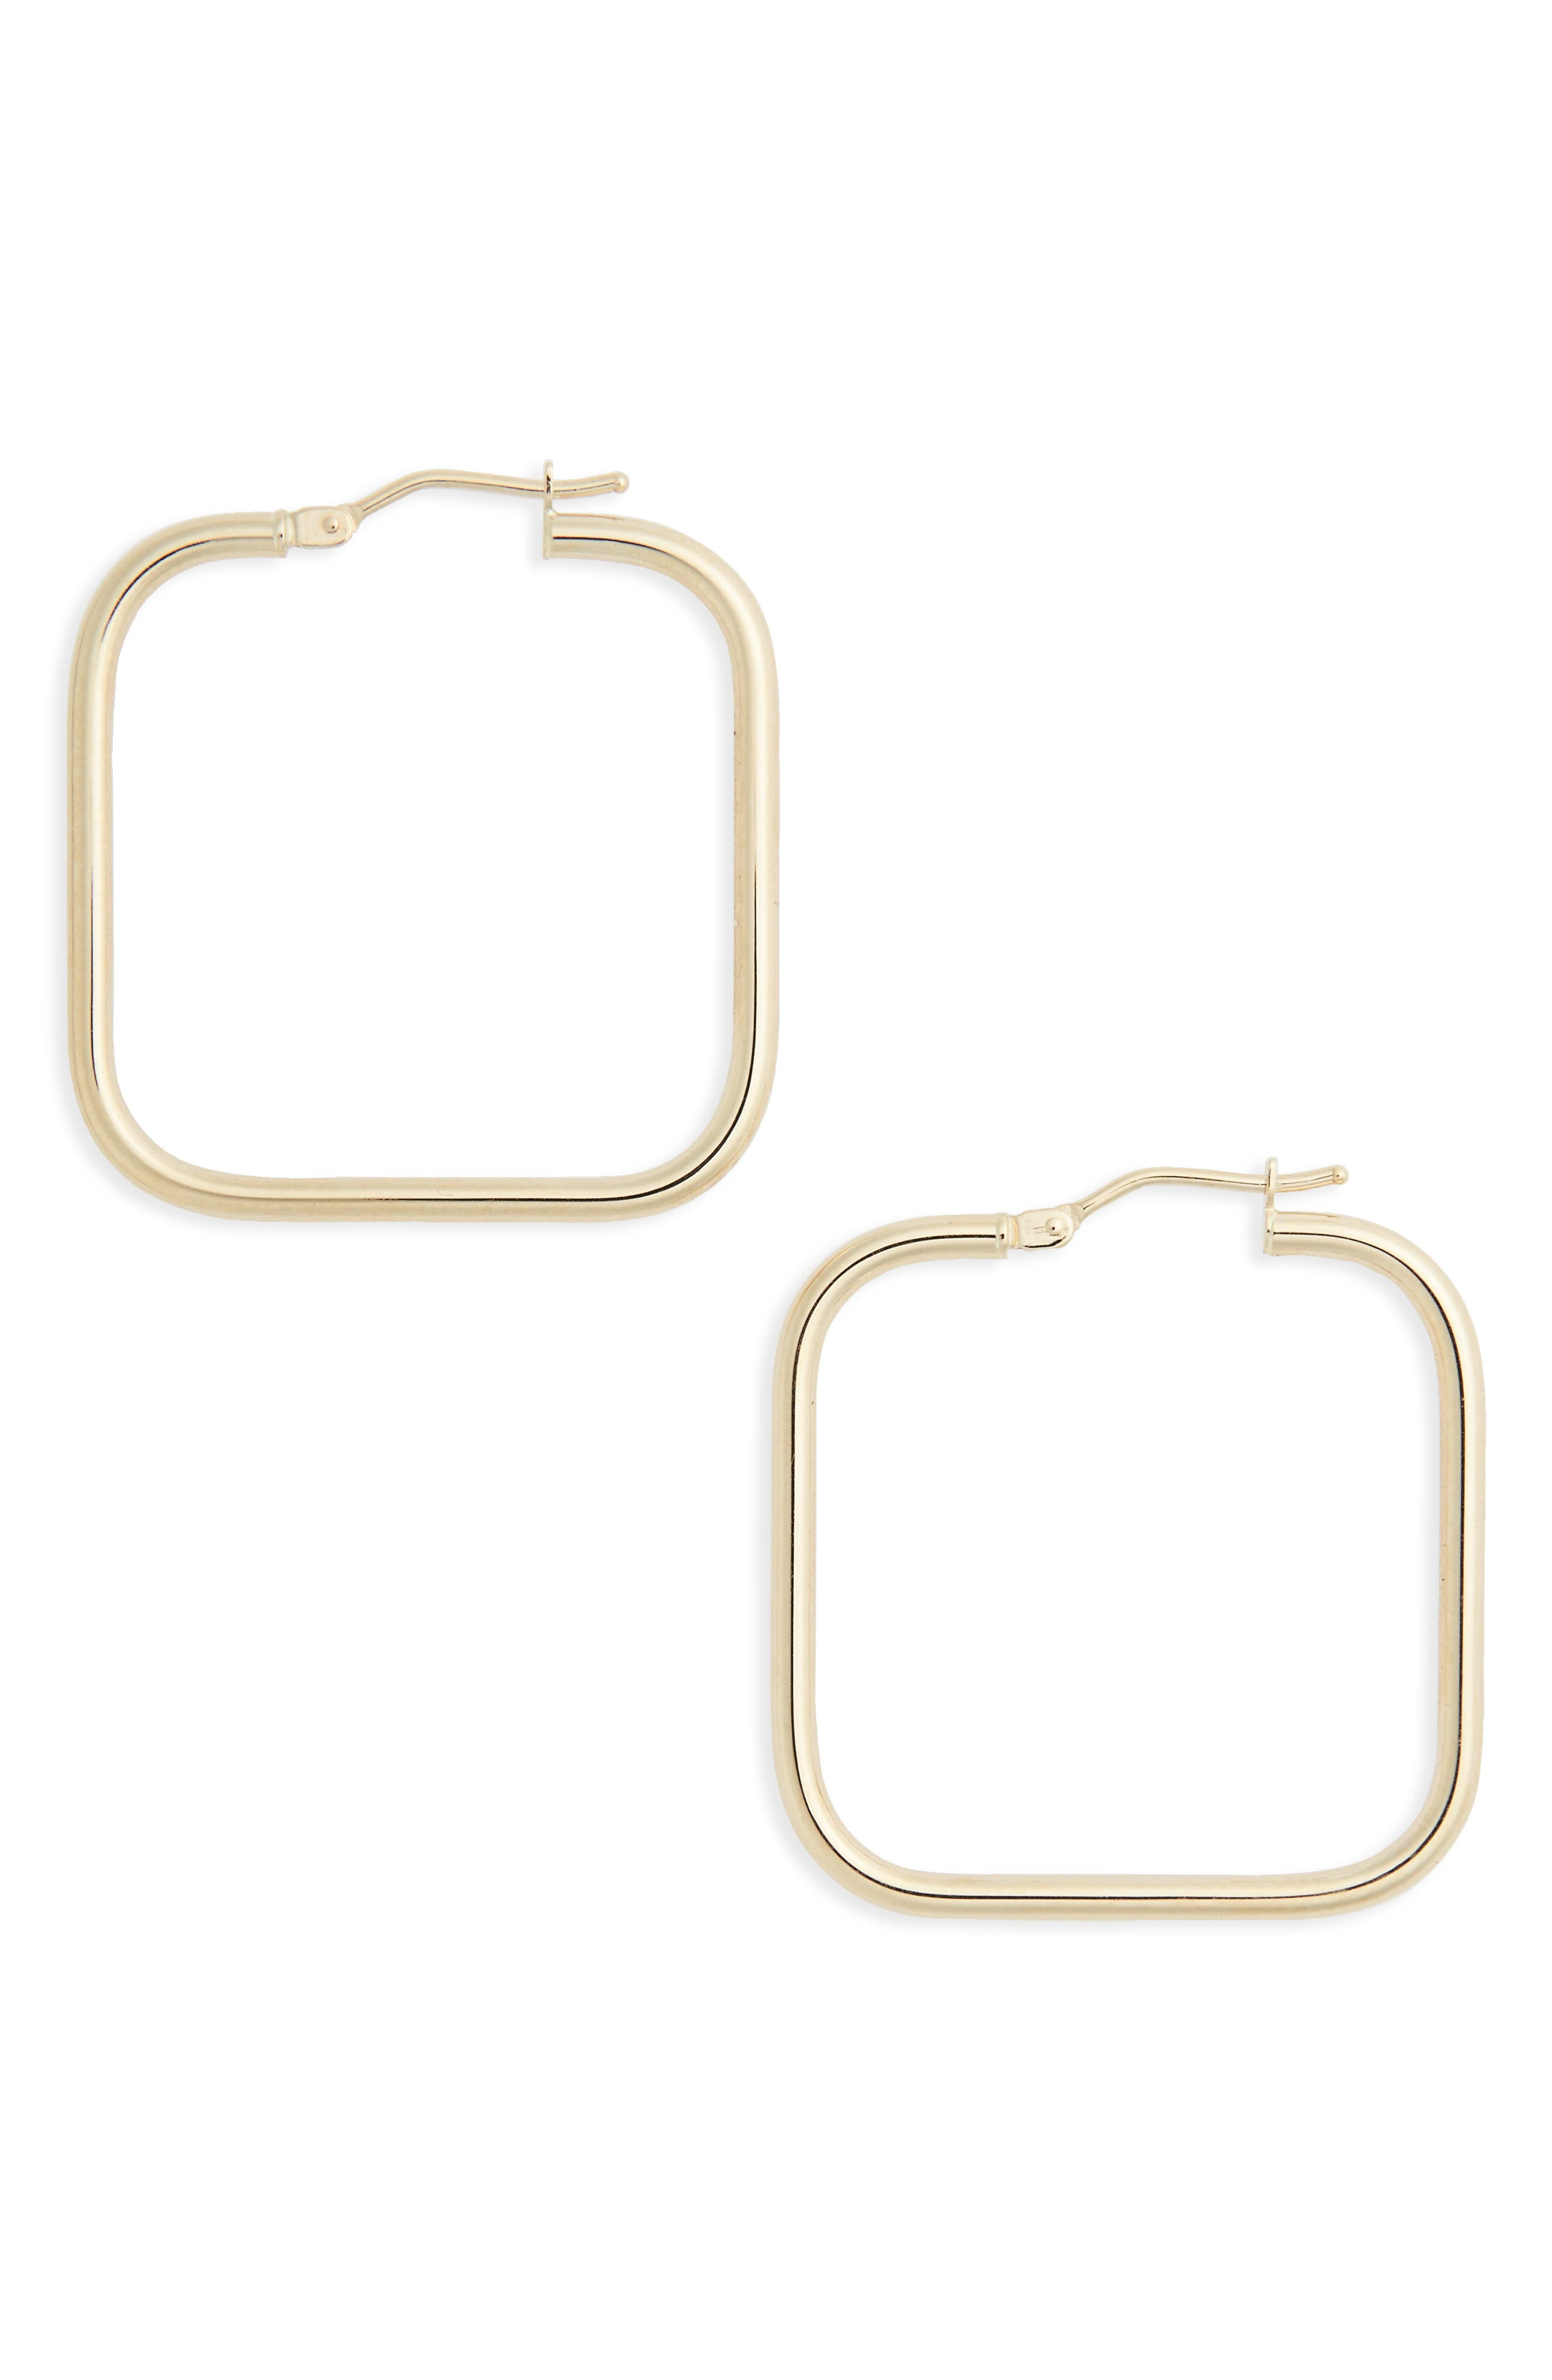 BONY LEVY Square Hoop Earrings, Main, color, YELLOW GOLD